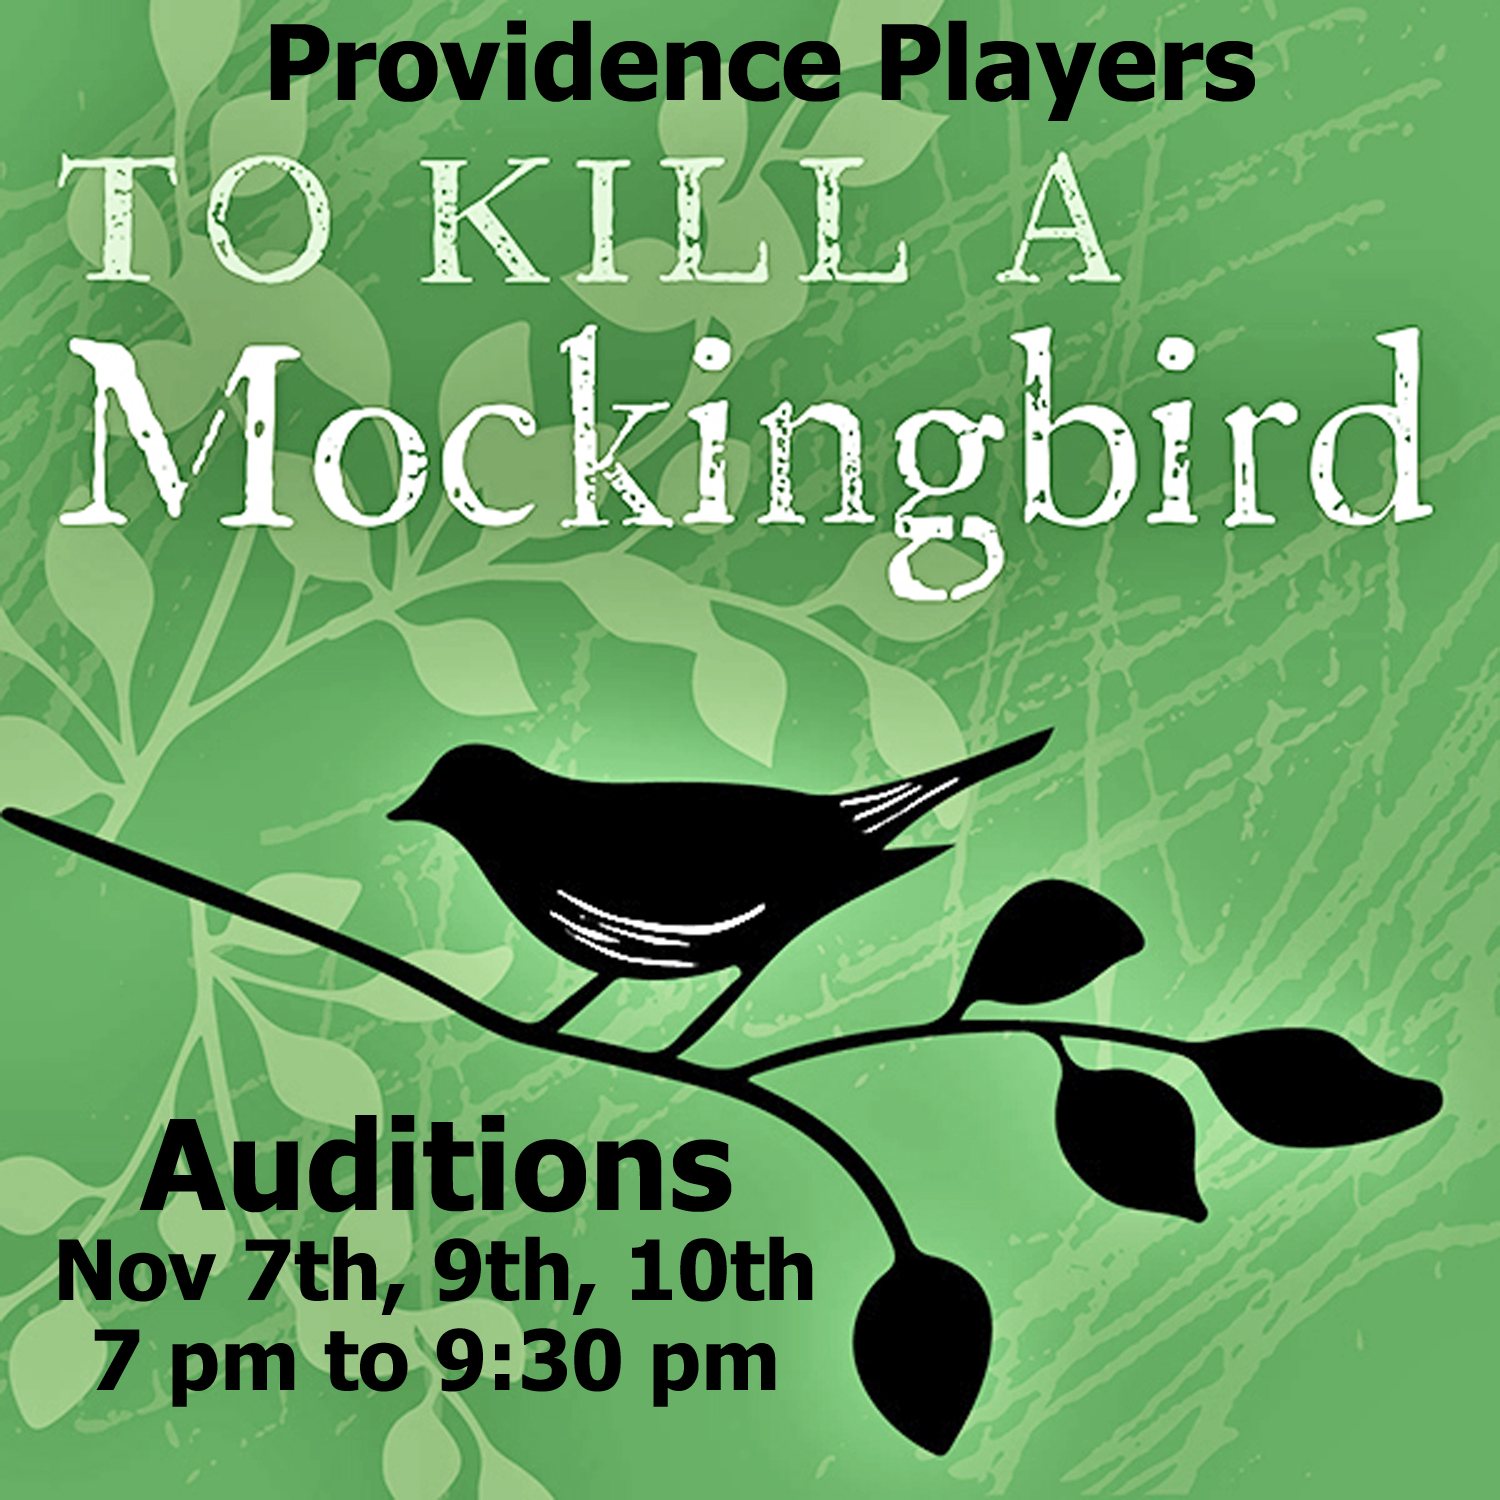 similarities between to kill a mocking birds Certain uncanny resemblances between tom robinson and boo radley's lives exist in harper lee's to kill a mockingbird often large groups of people misunderstand certain unusual individuals.